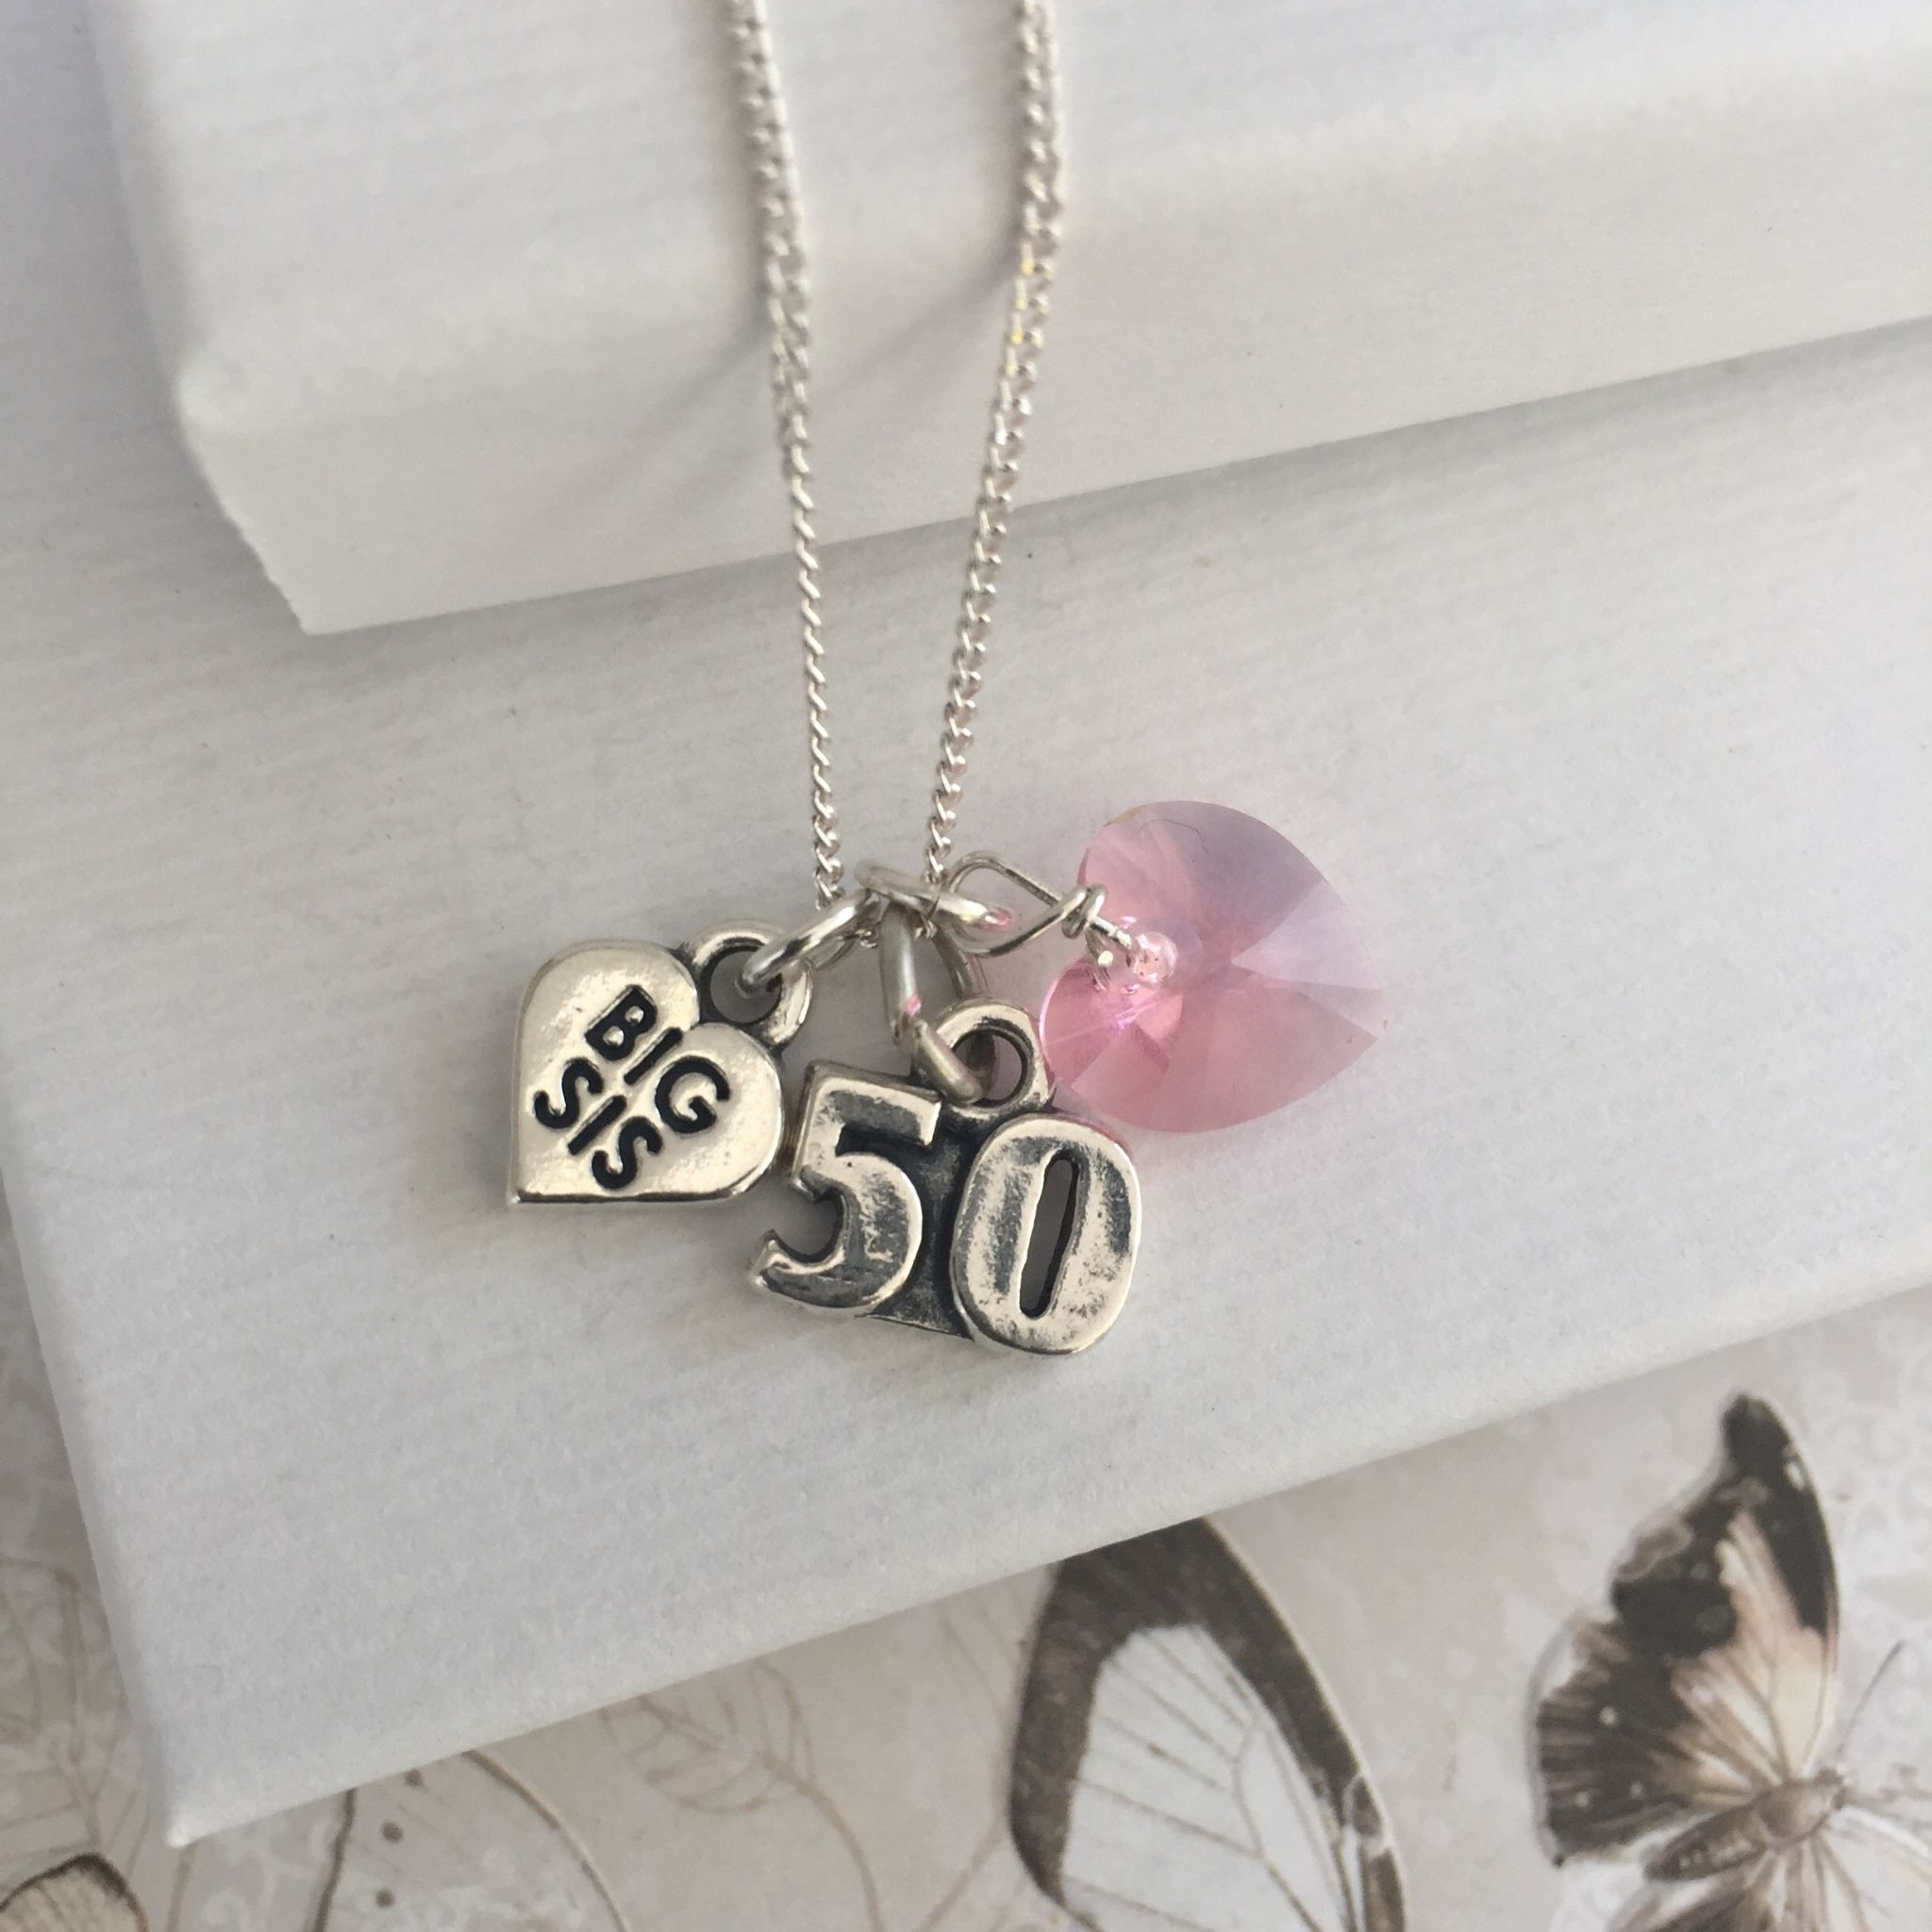 Big Sister 50th Birthday Gift Necklace